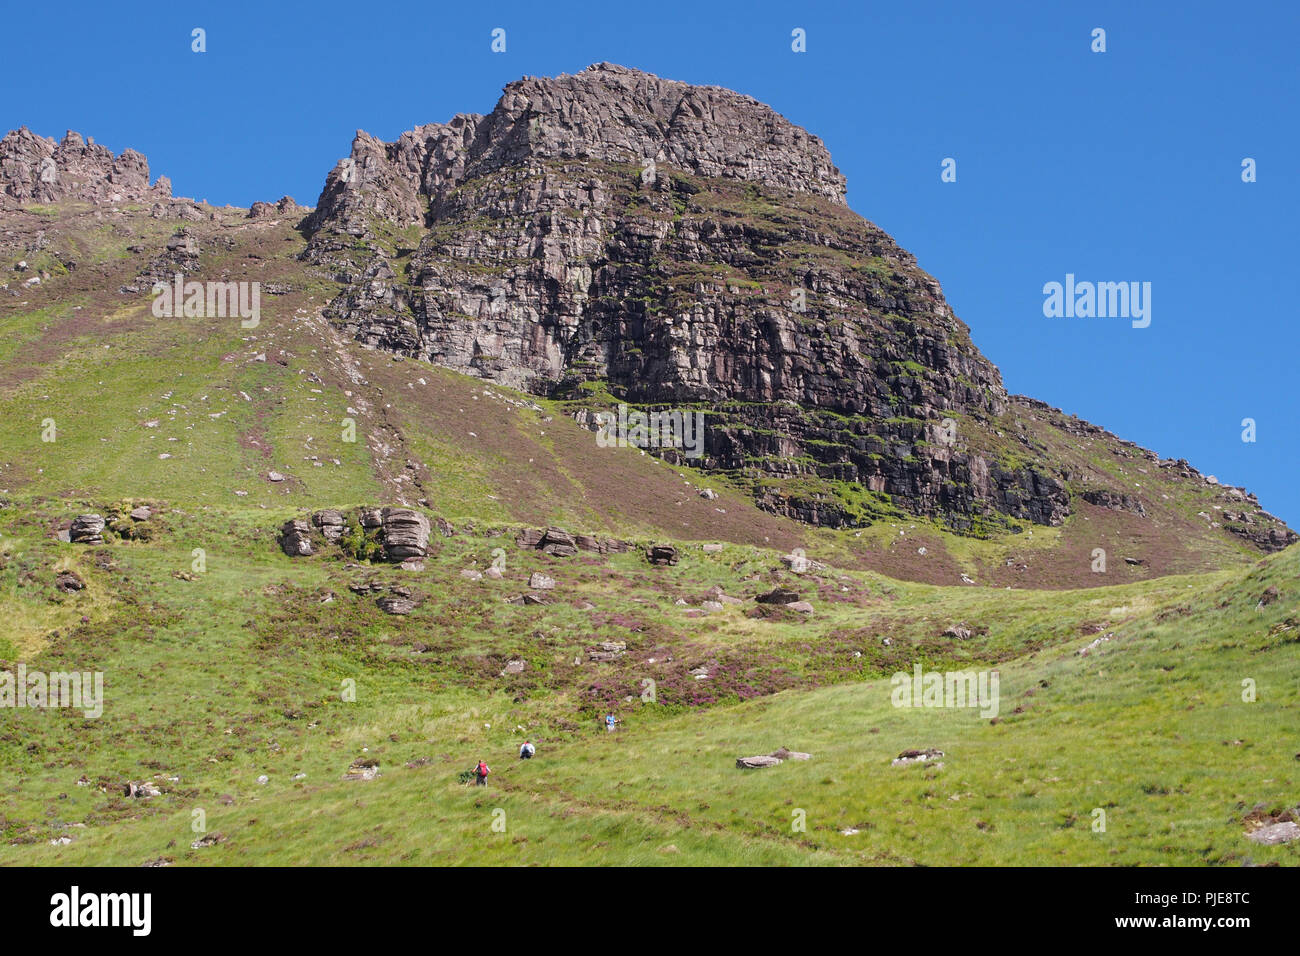 A view looking up at Stac Pollaidh, Scotland, from the south side, car park path, with three hill walkers ascending the mountain track to the rocks - Stock Image